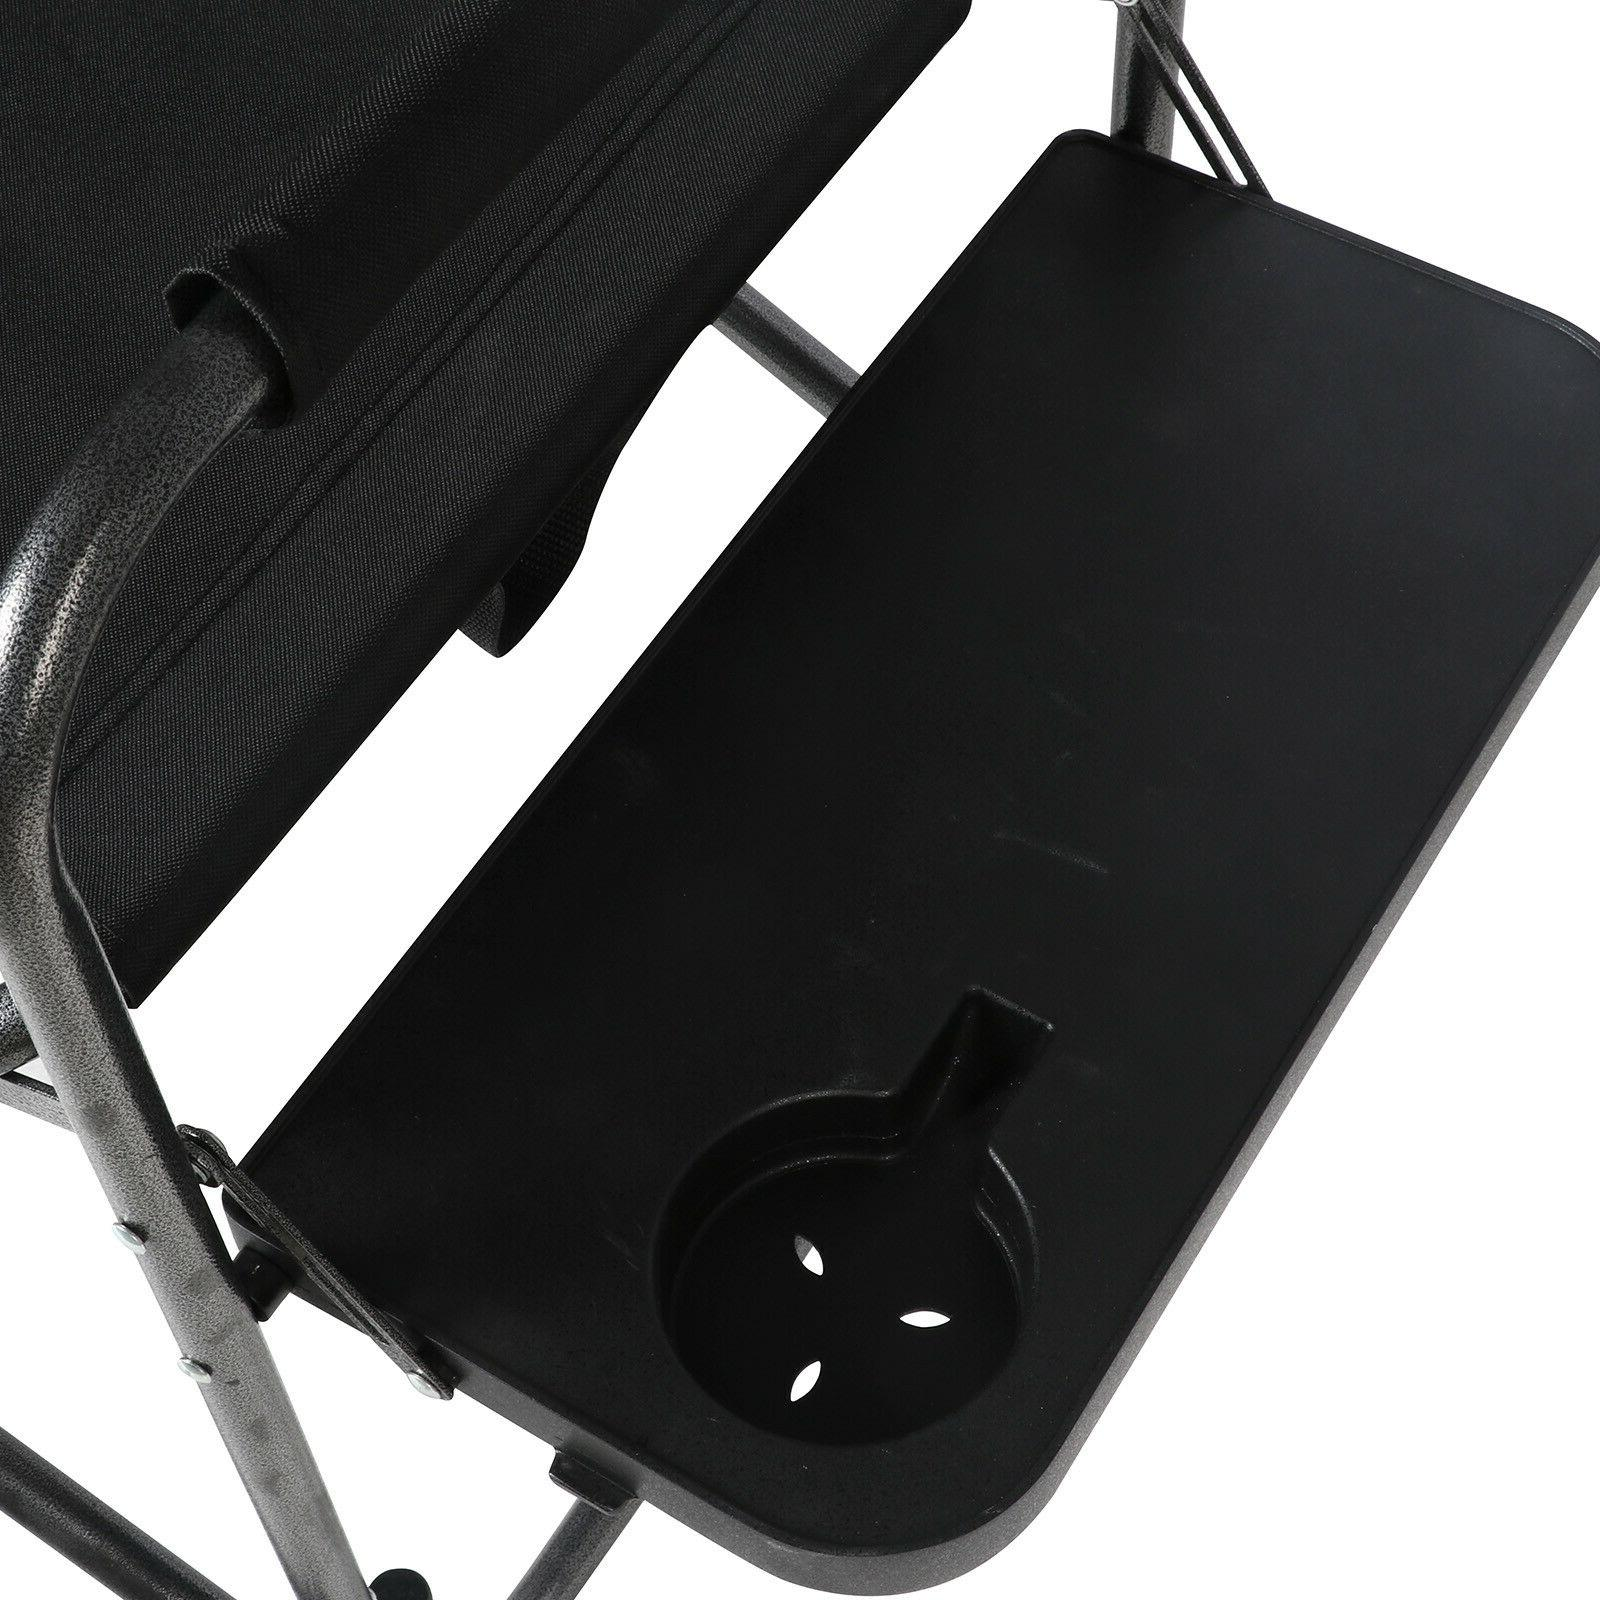 Camping Duty Chair Portable Side Table